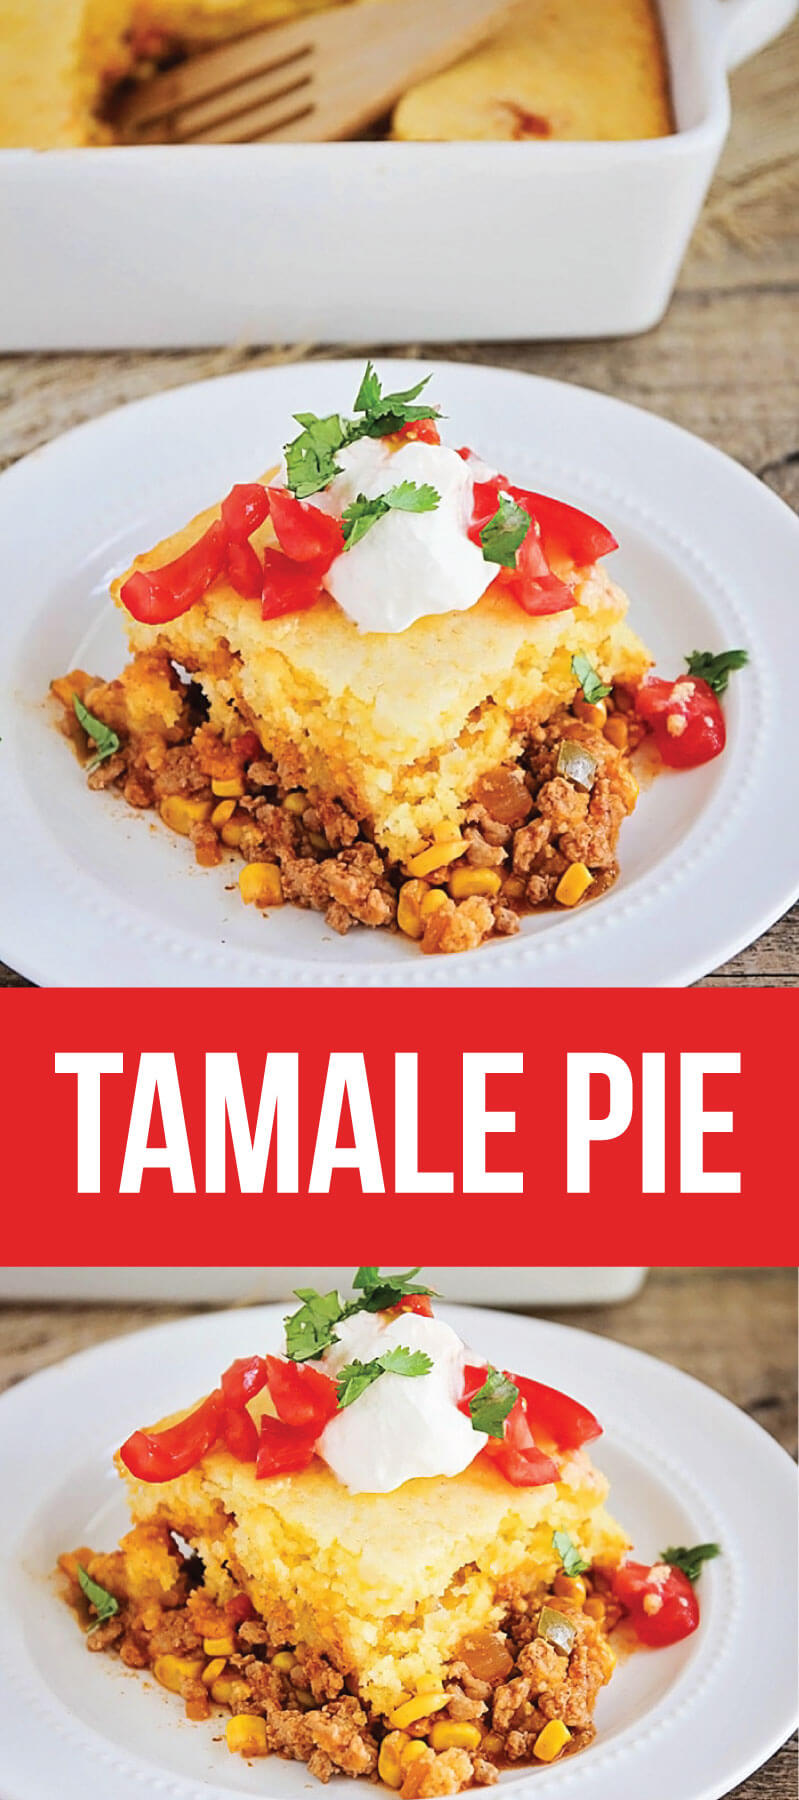 5 Ingredient Tamale Pie - easy, yummy dinner that the whole family will love! from www.somewhatsimple.com